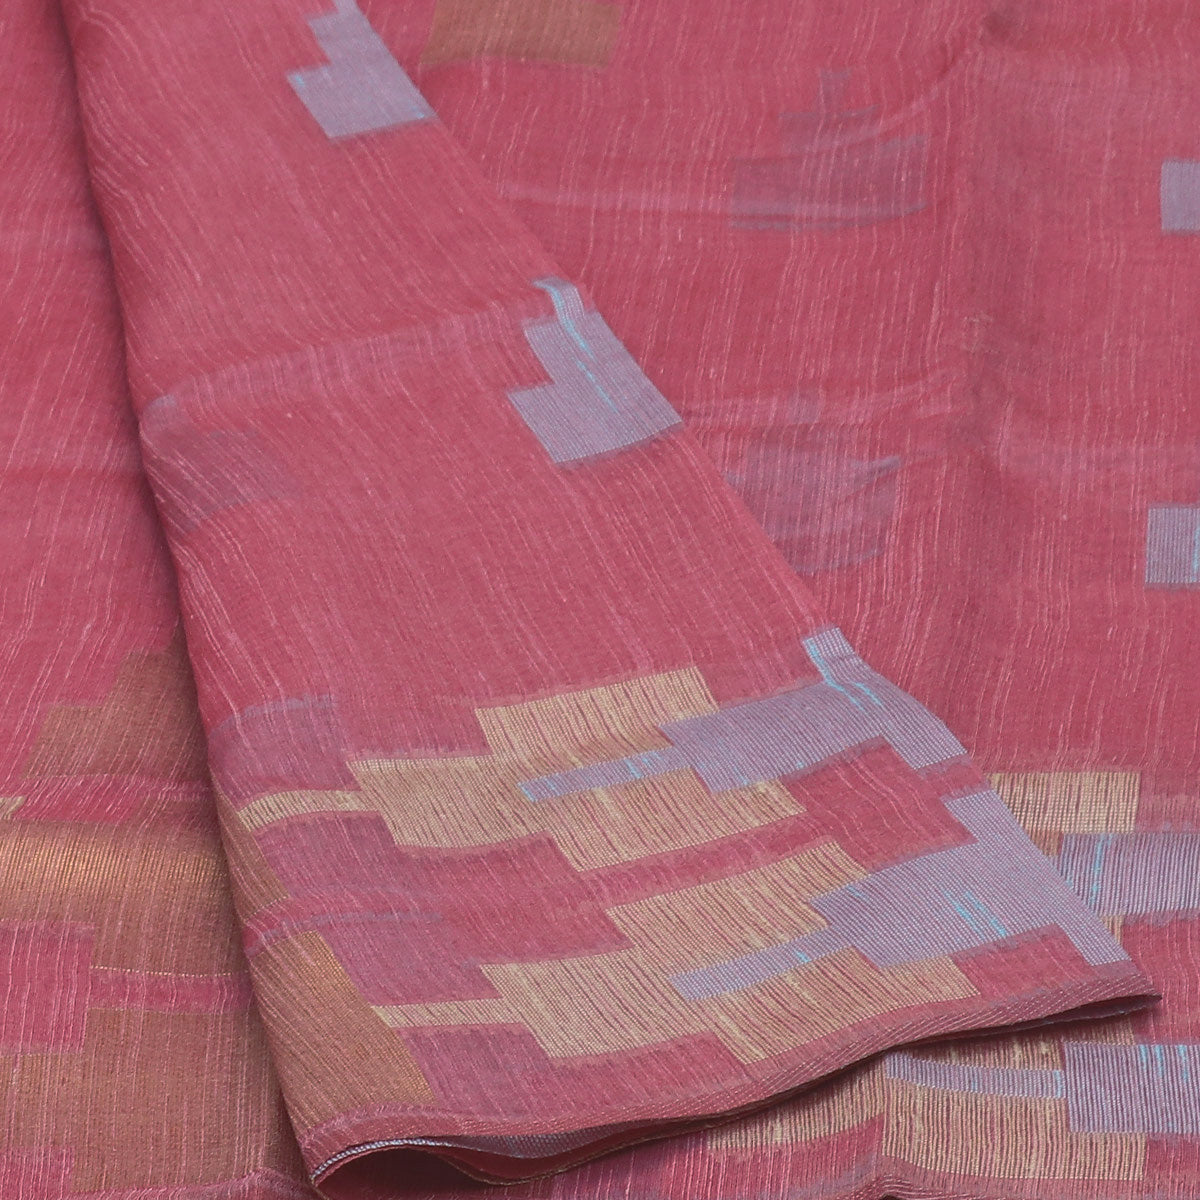 Jute Linen Saree Pink with Temple Design and Simple border